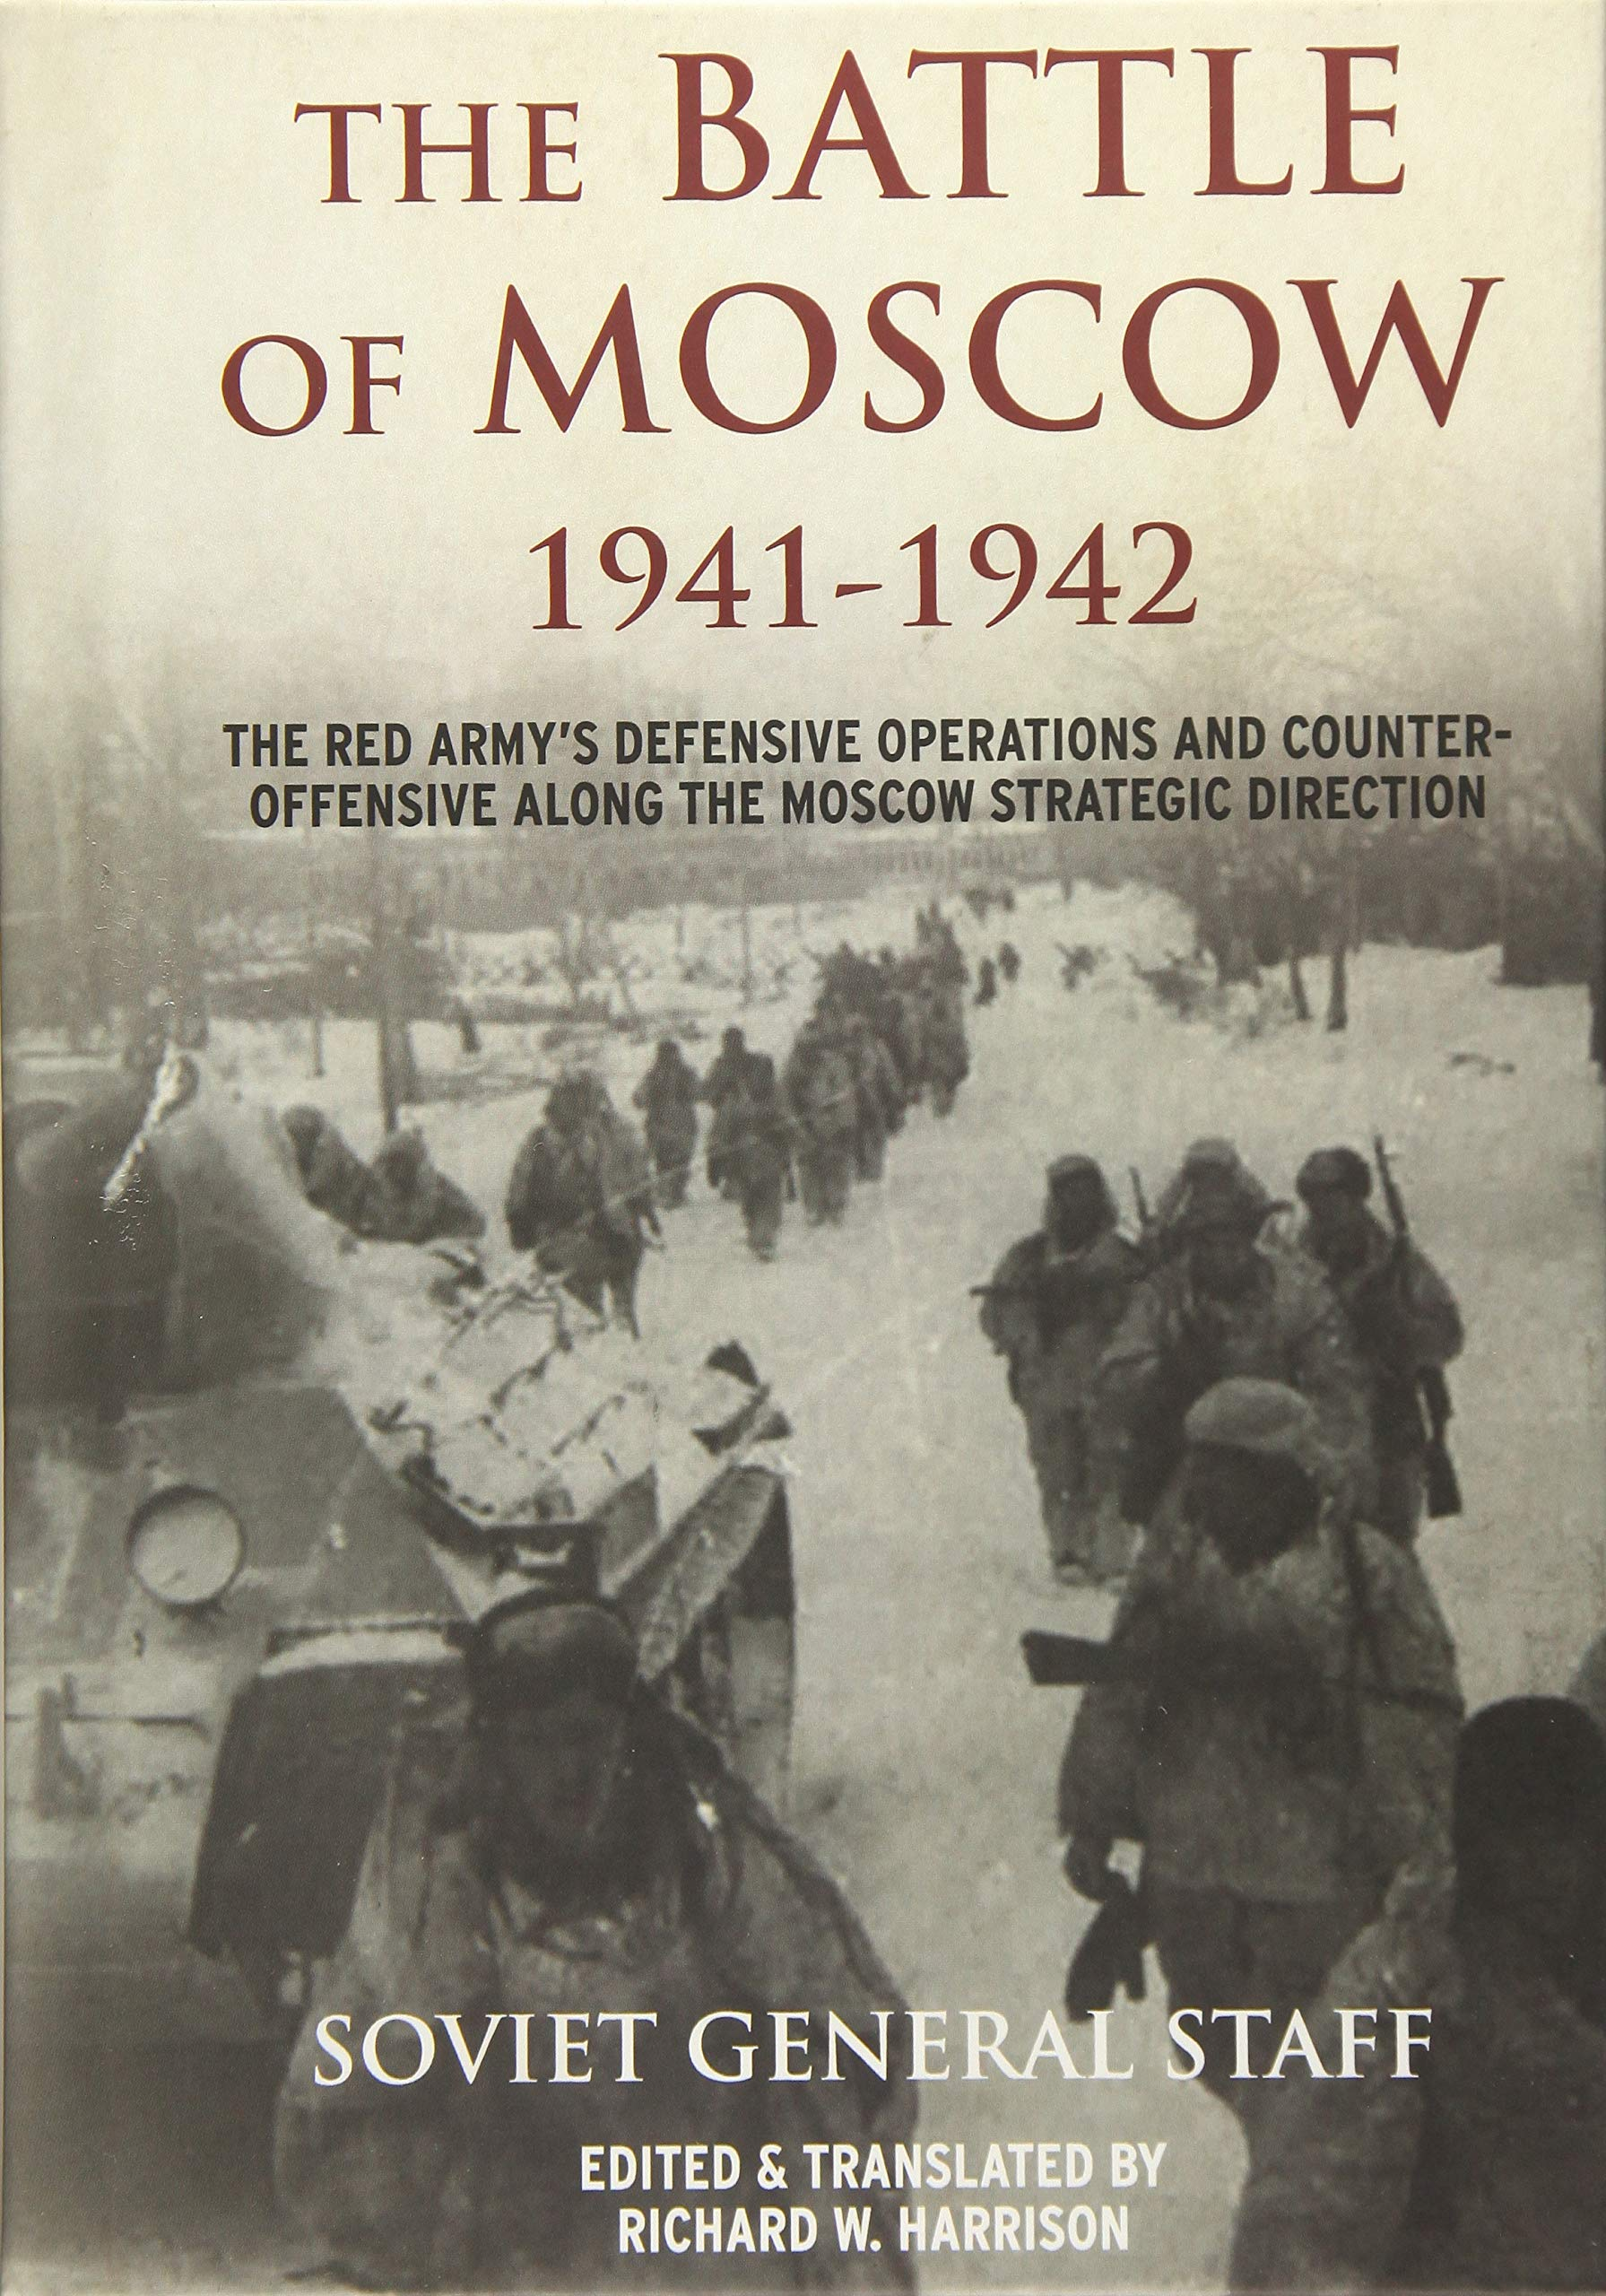 The Moscow Battle of 1941